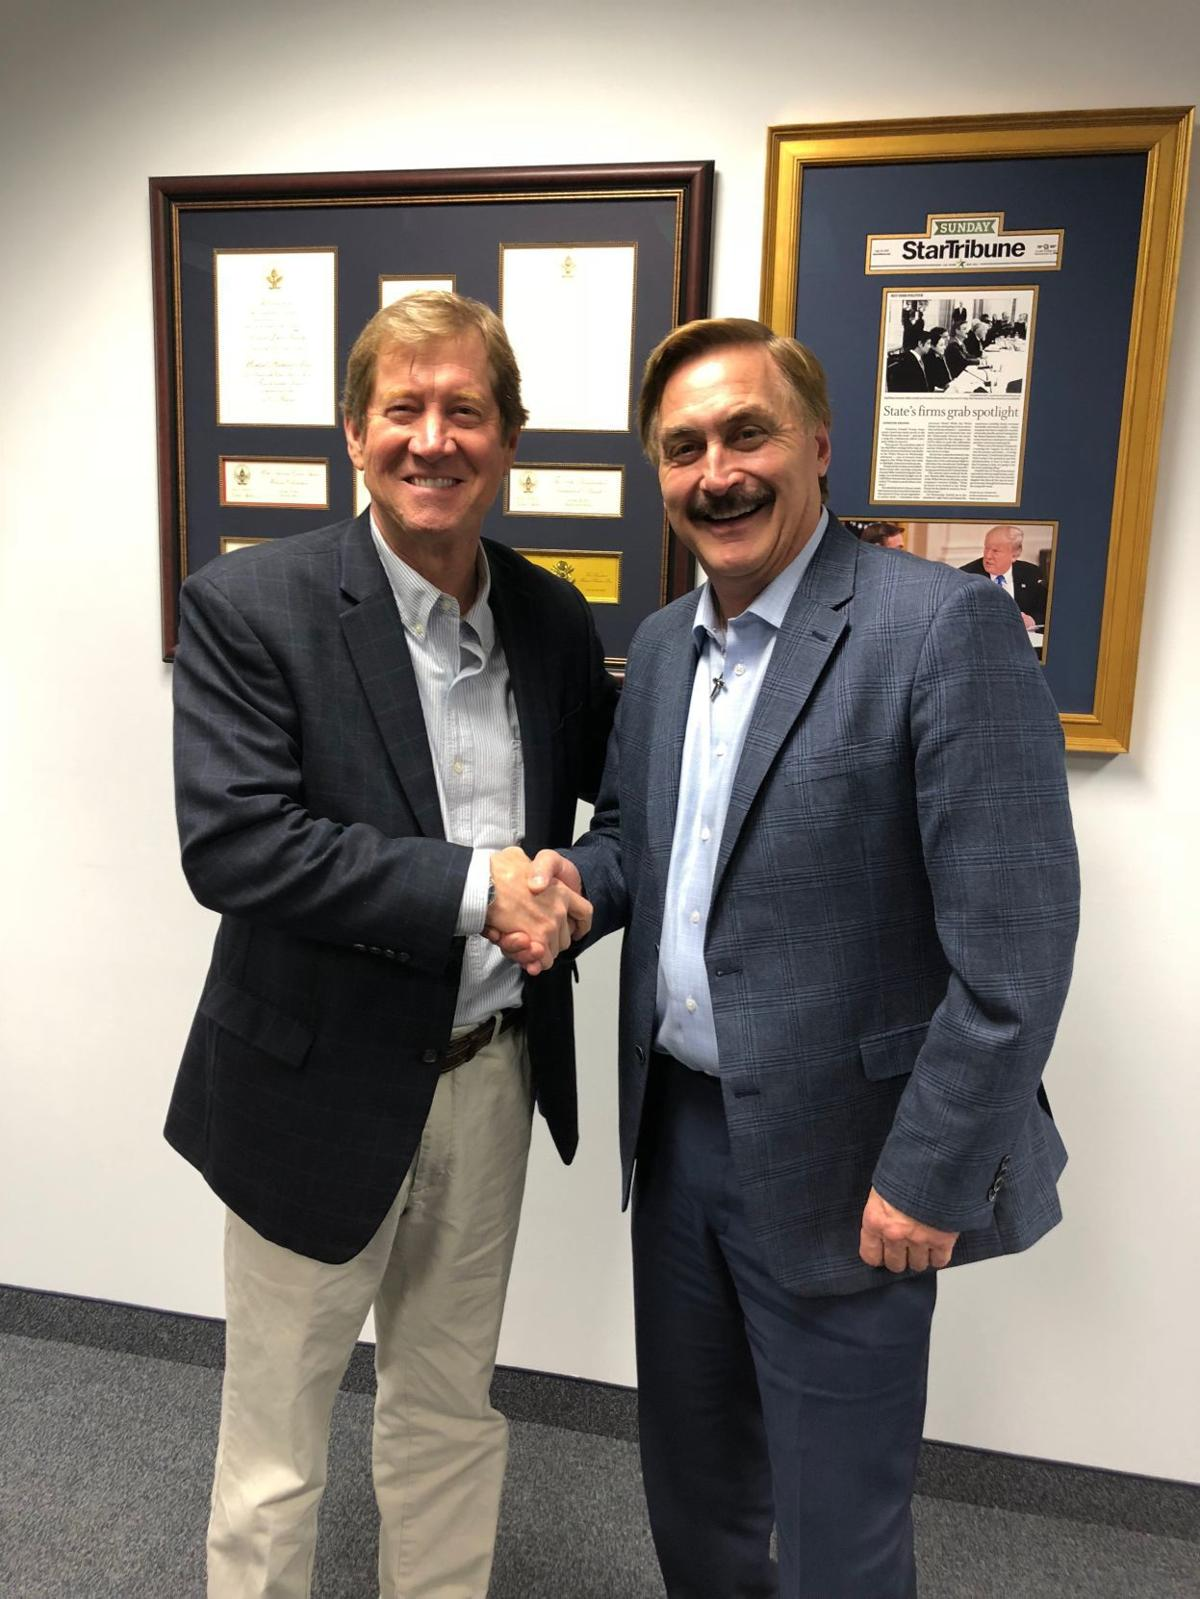 Mike Lindell and Jason Lewis